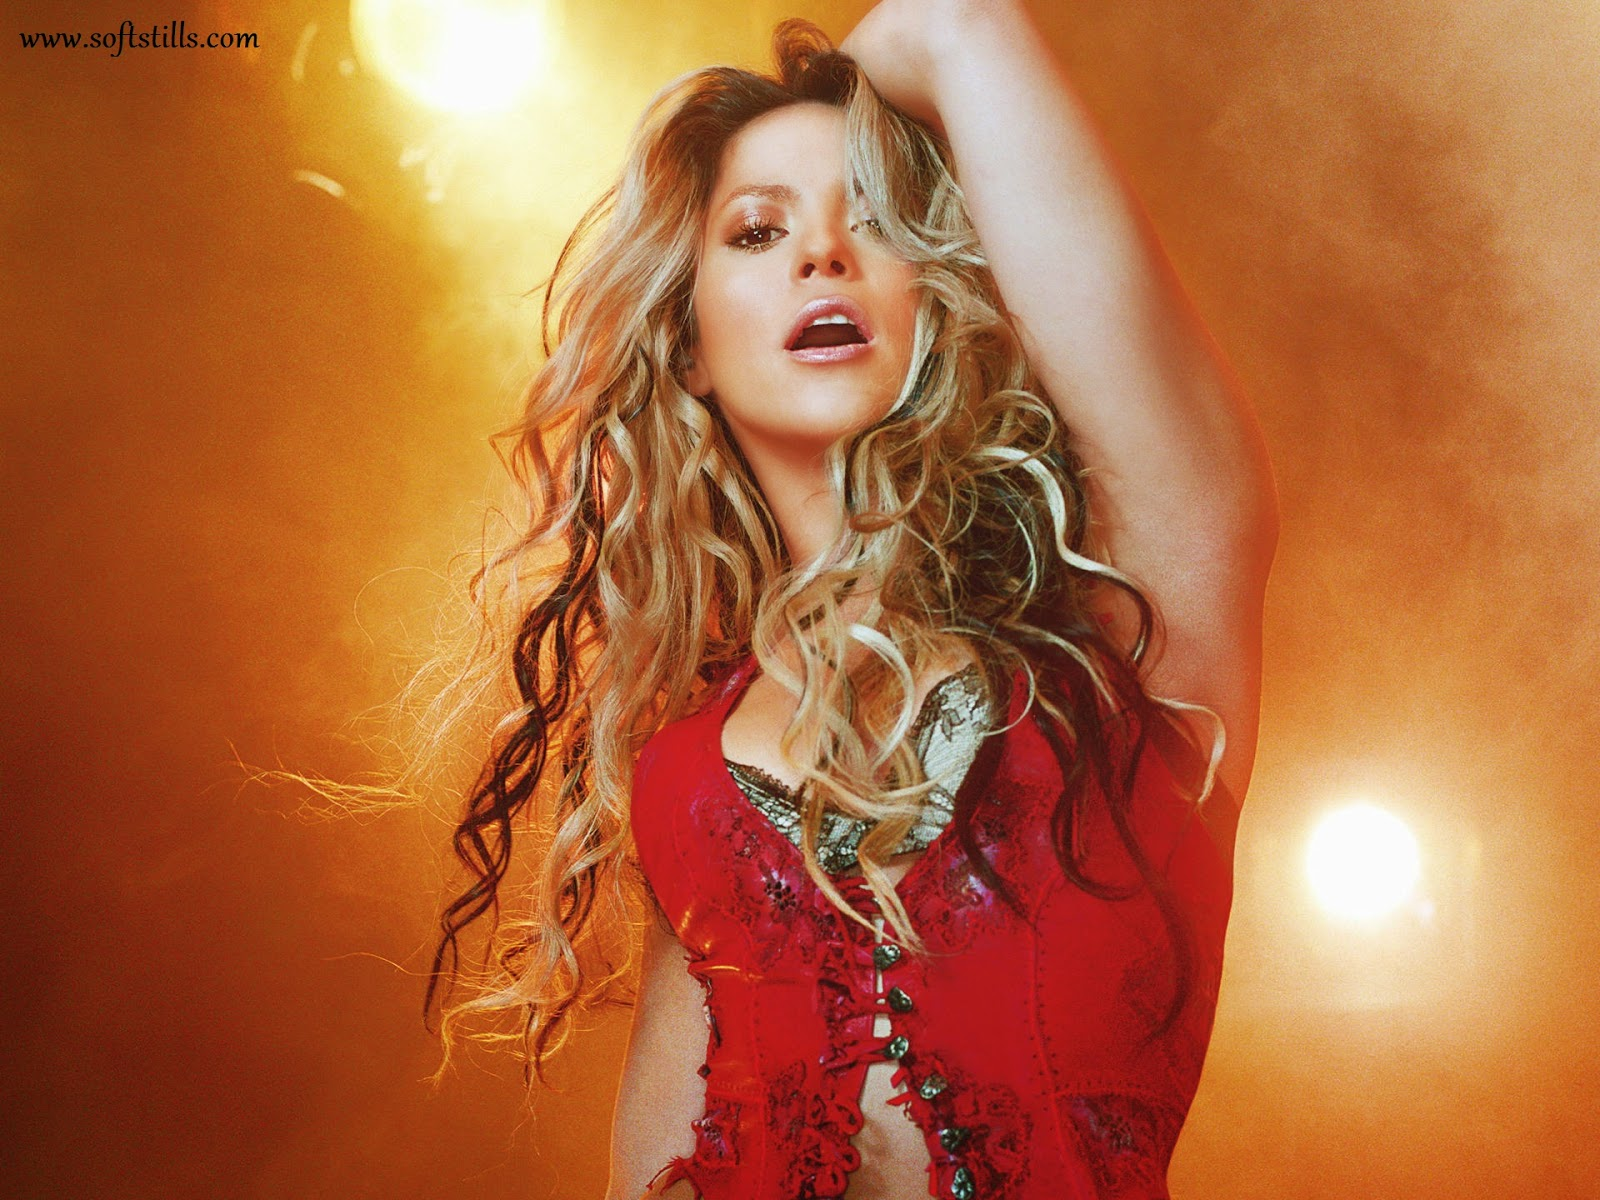 http://www.softstills.com/2014/11/hot-shakira-hd-wallpapers.html